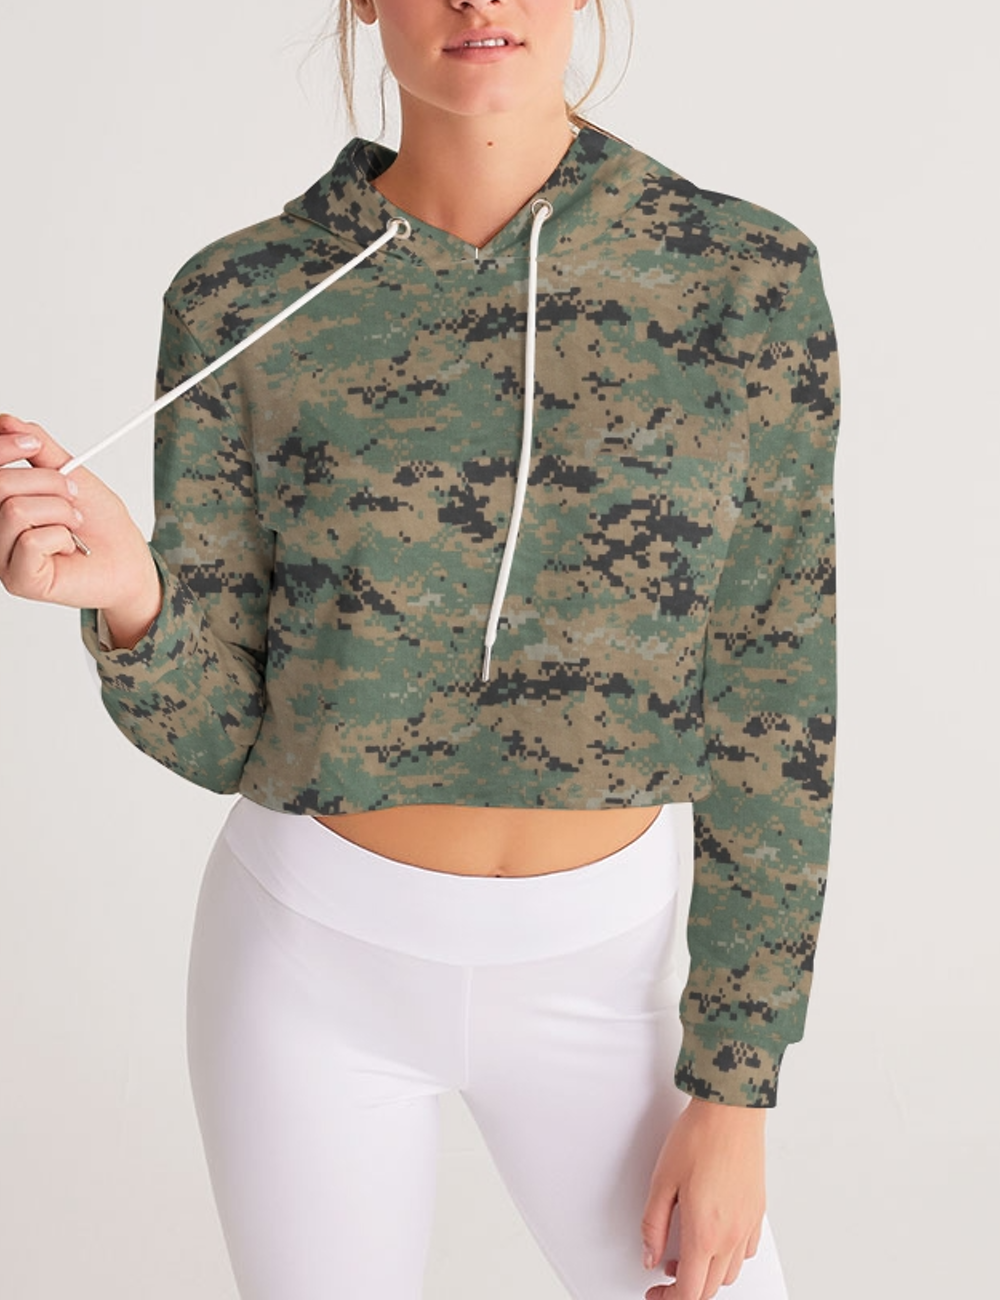 MARPAT Digital Woodland Camouflage Print | Women's Sublimated Cropped Hoodie